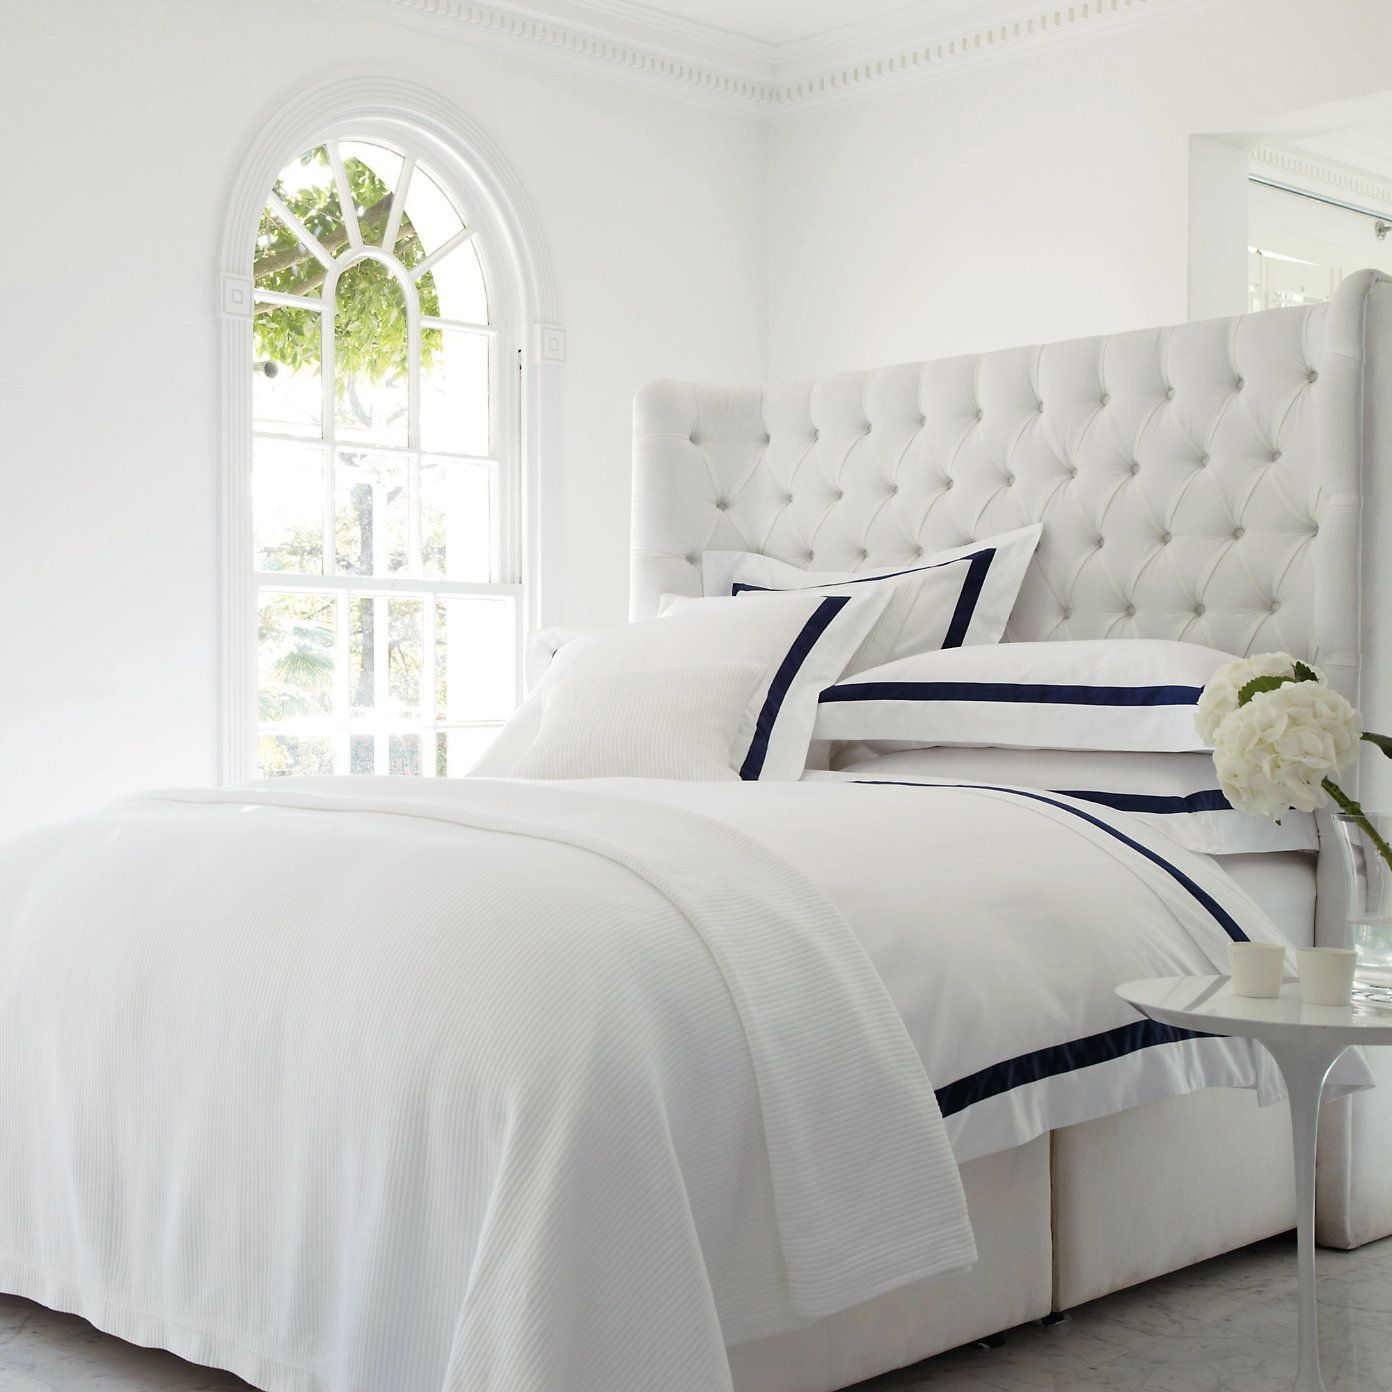 Headboard from the white company upholstered headboards